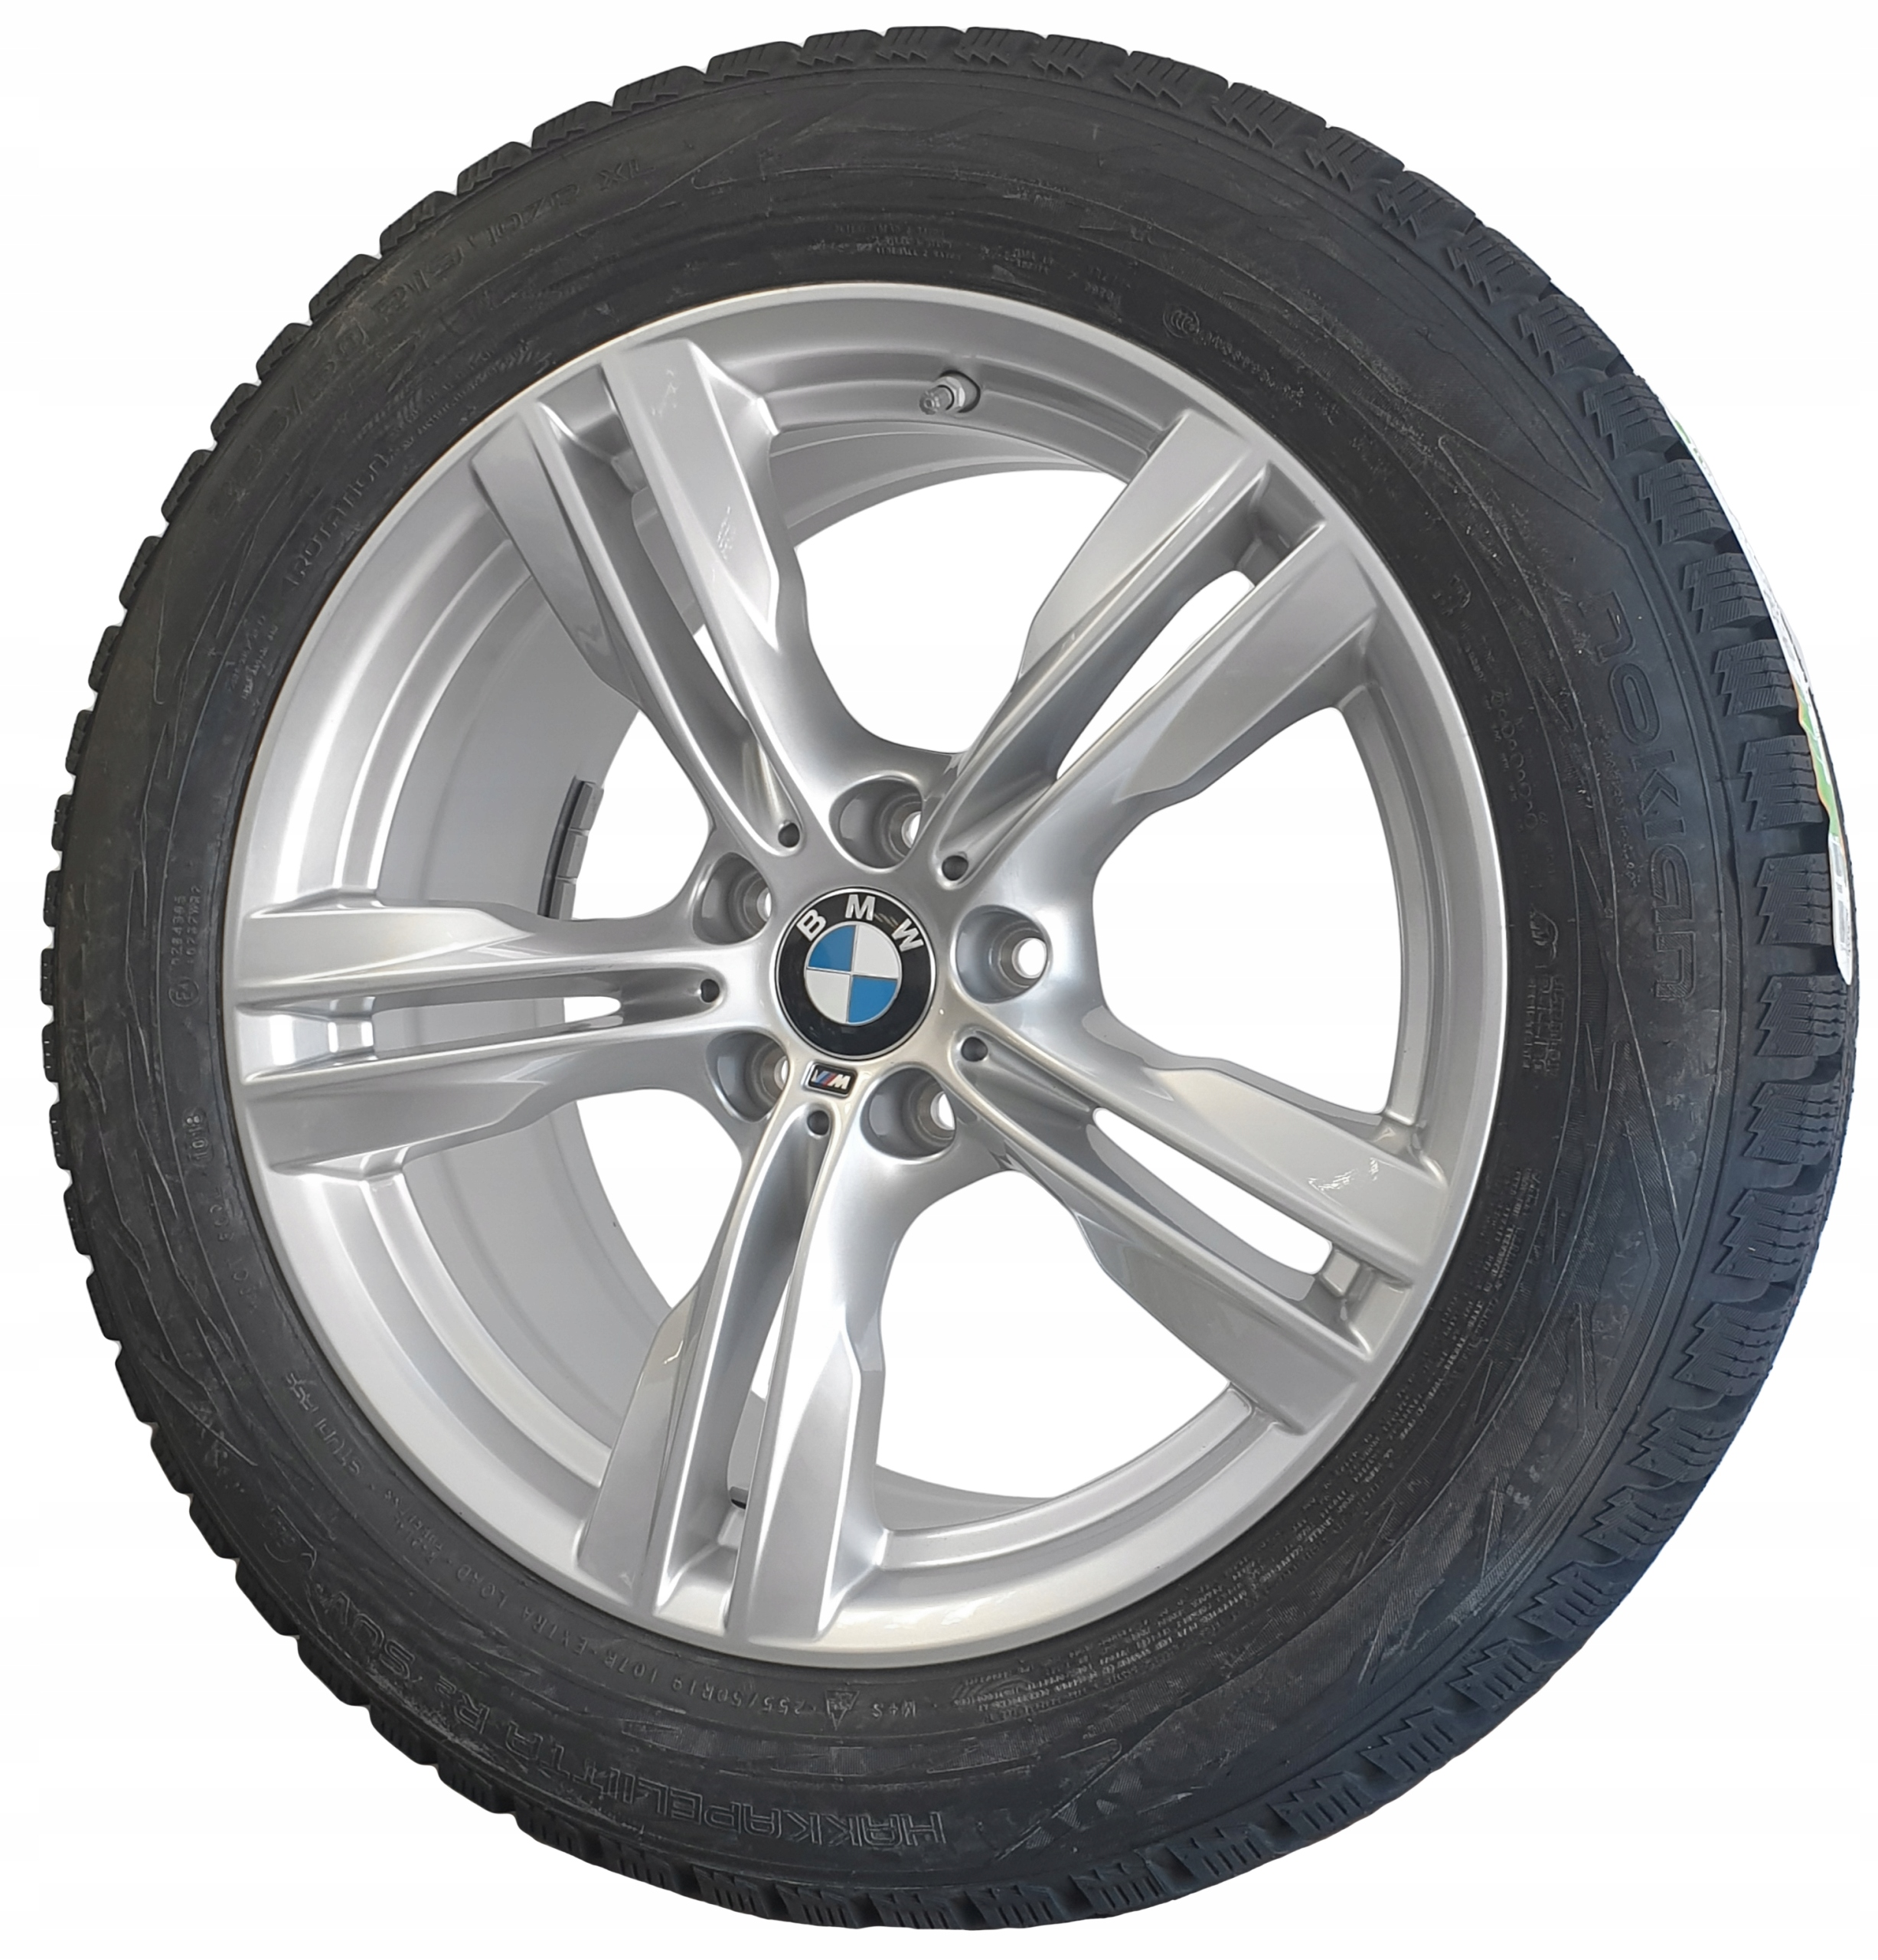 НОВЫЕ Диски BMW 19 X5 F15 E70 Nokian WINTER RunFlat